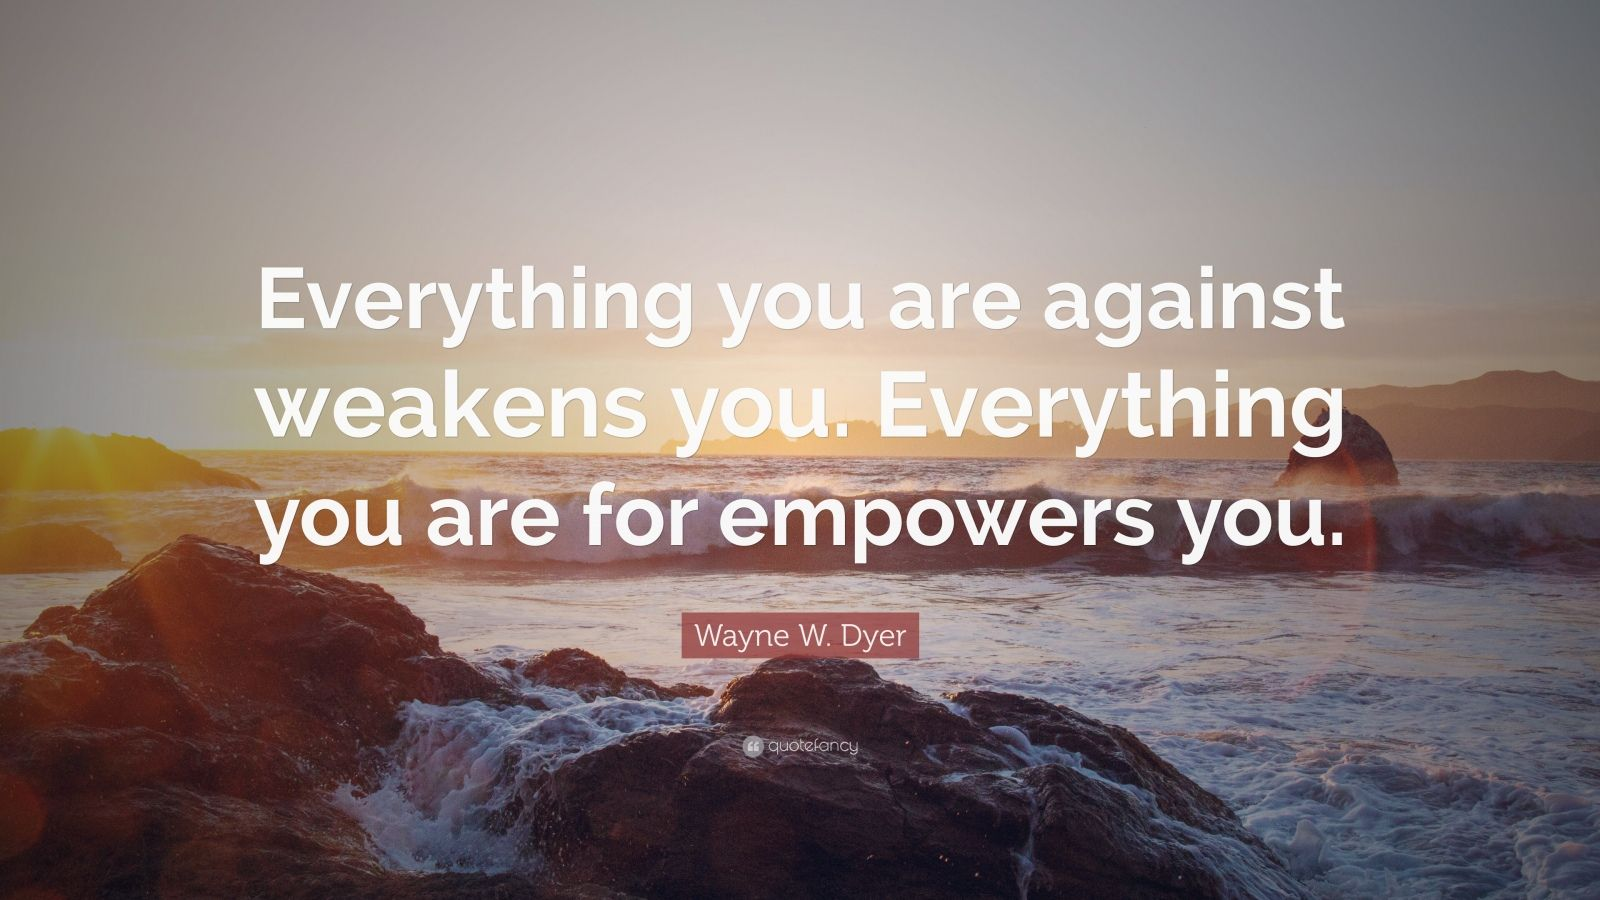 "Wayne W. Dyer Quote: ""Everything you are against weakens you. Everything you are for empowers you."""